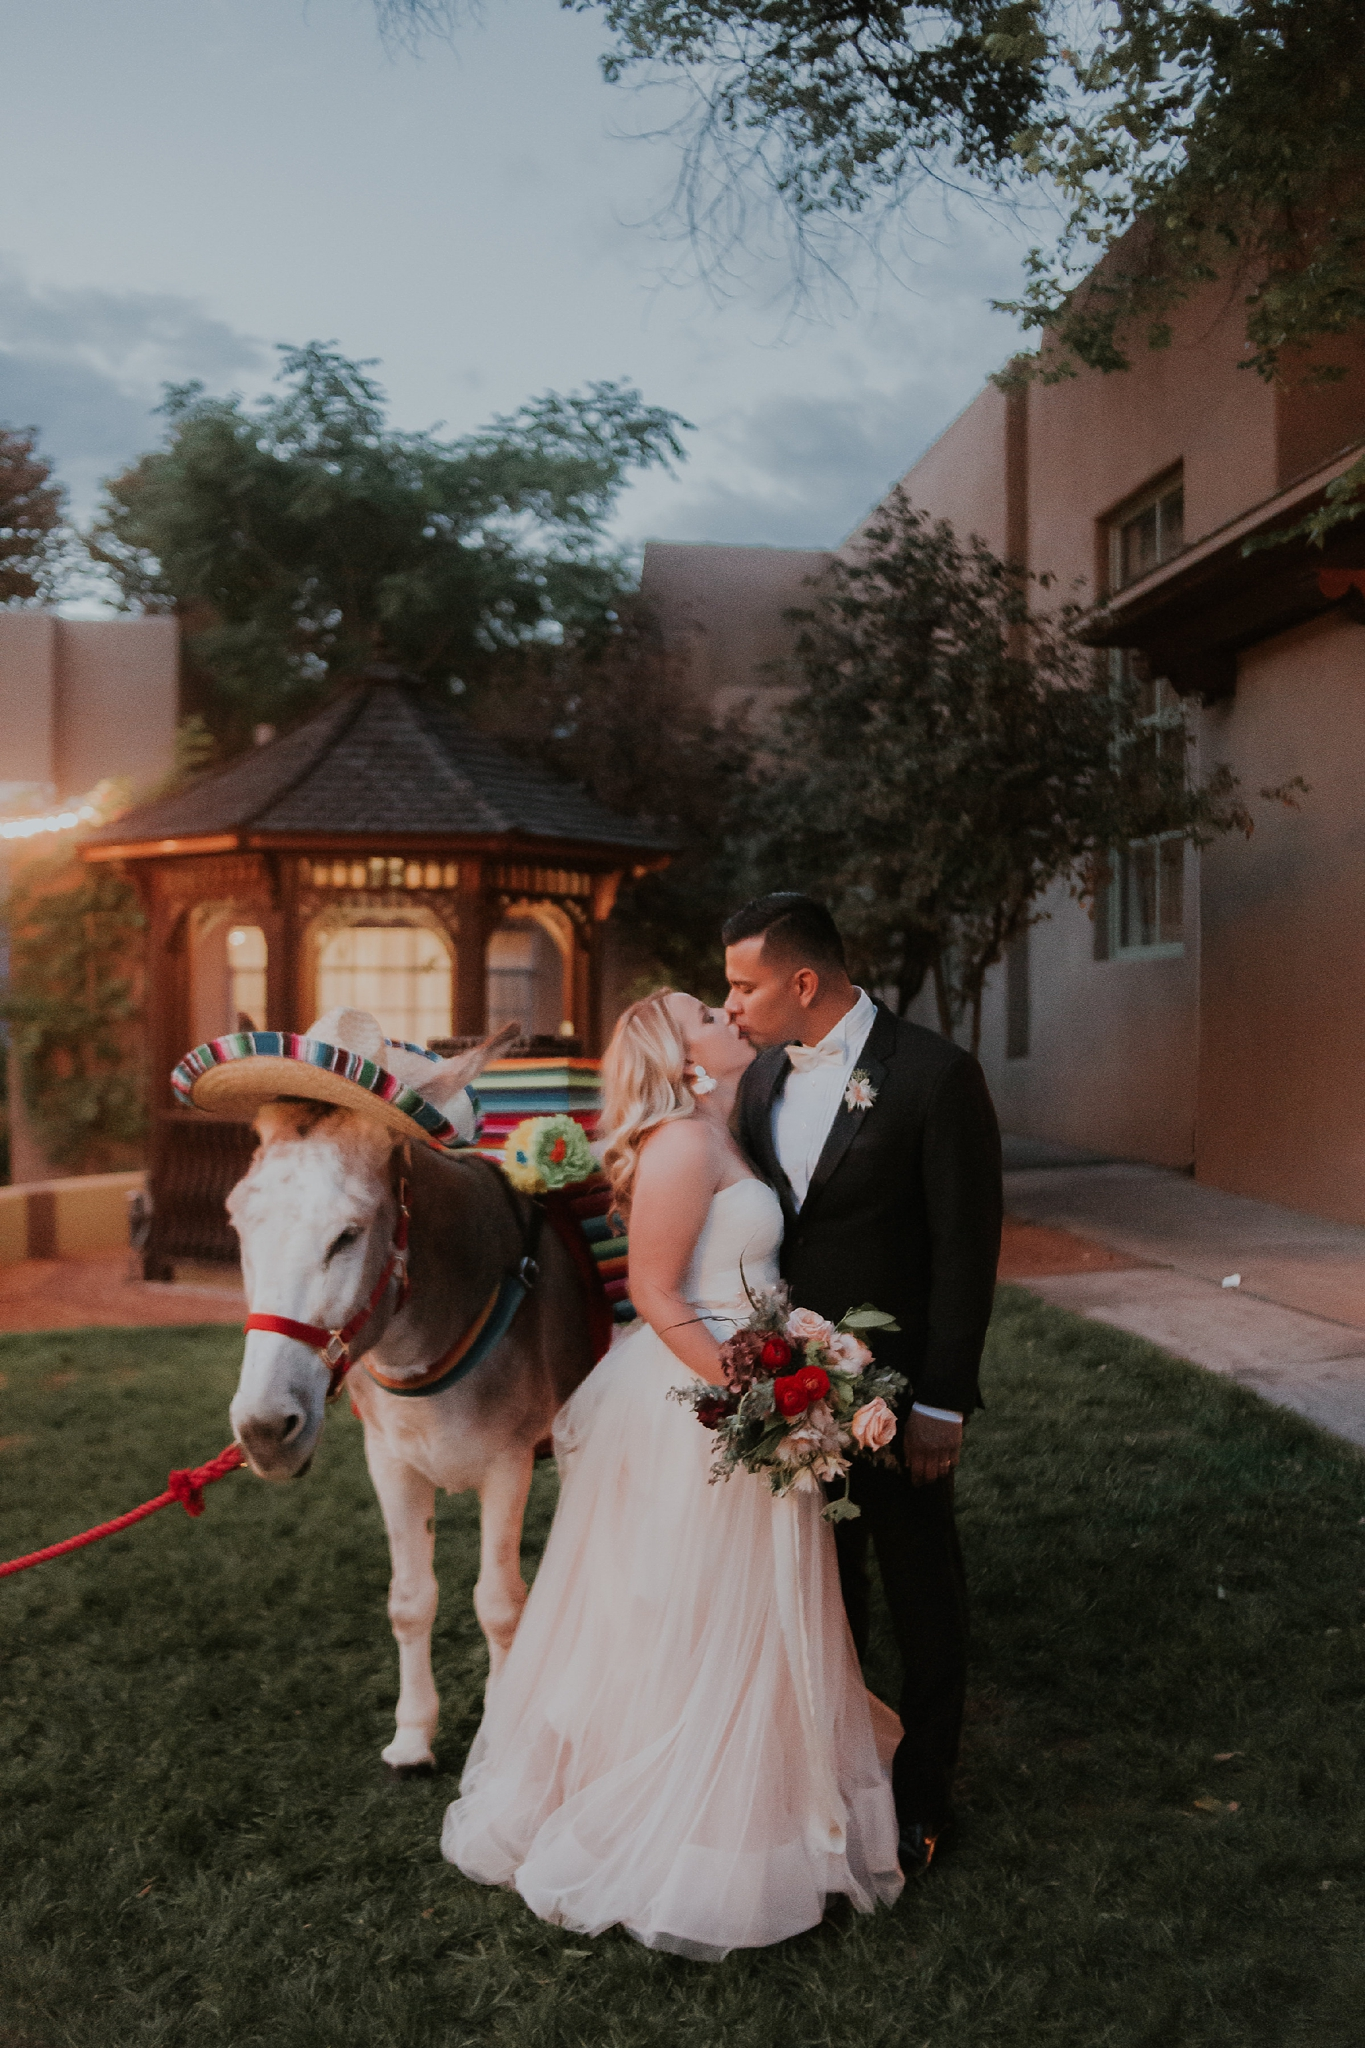 Alicia+lucia+photography+-+albuquerque+wedding+photographer+-+santa+fe+wedding+photography+-+new+mexico+wedding+photographer+-+new+mexico+wedding+-+santa+fe+wedding+-+albuquerque+wedding+-+southwest+wedding+traditions_0023.jpg